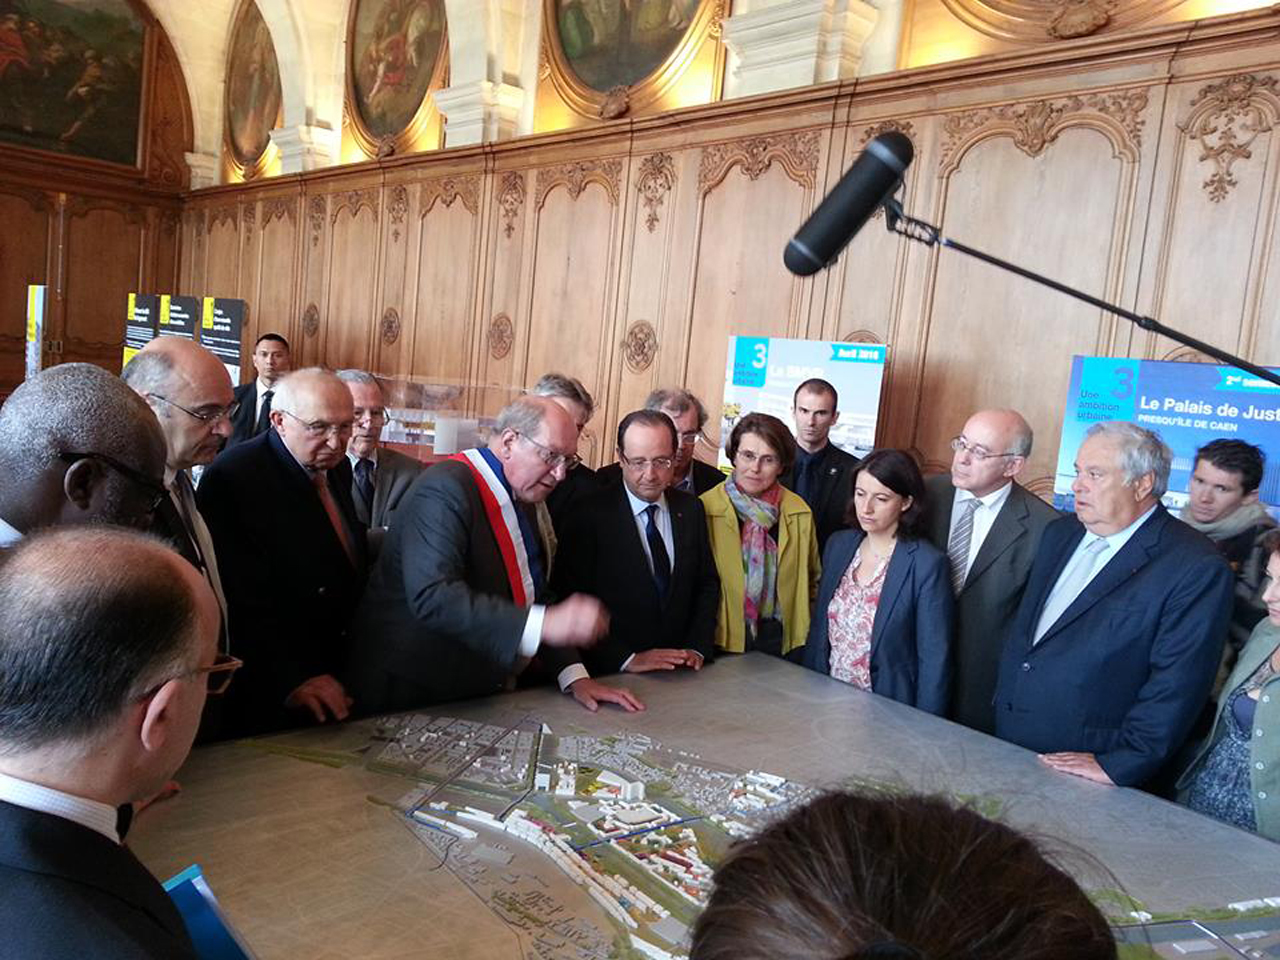 French President François Hollande INSPECTS MVRDV's CAEN MASTERPLAN in Caen